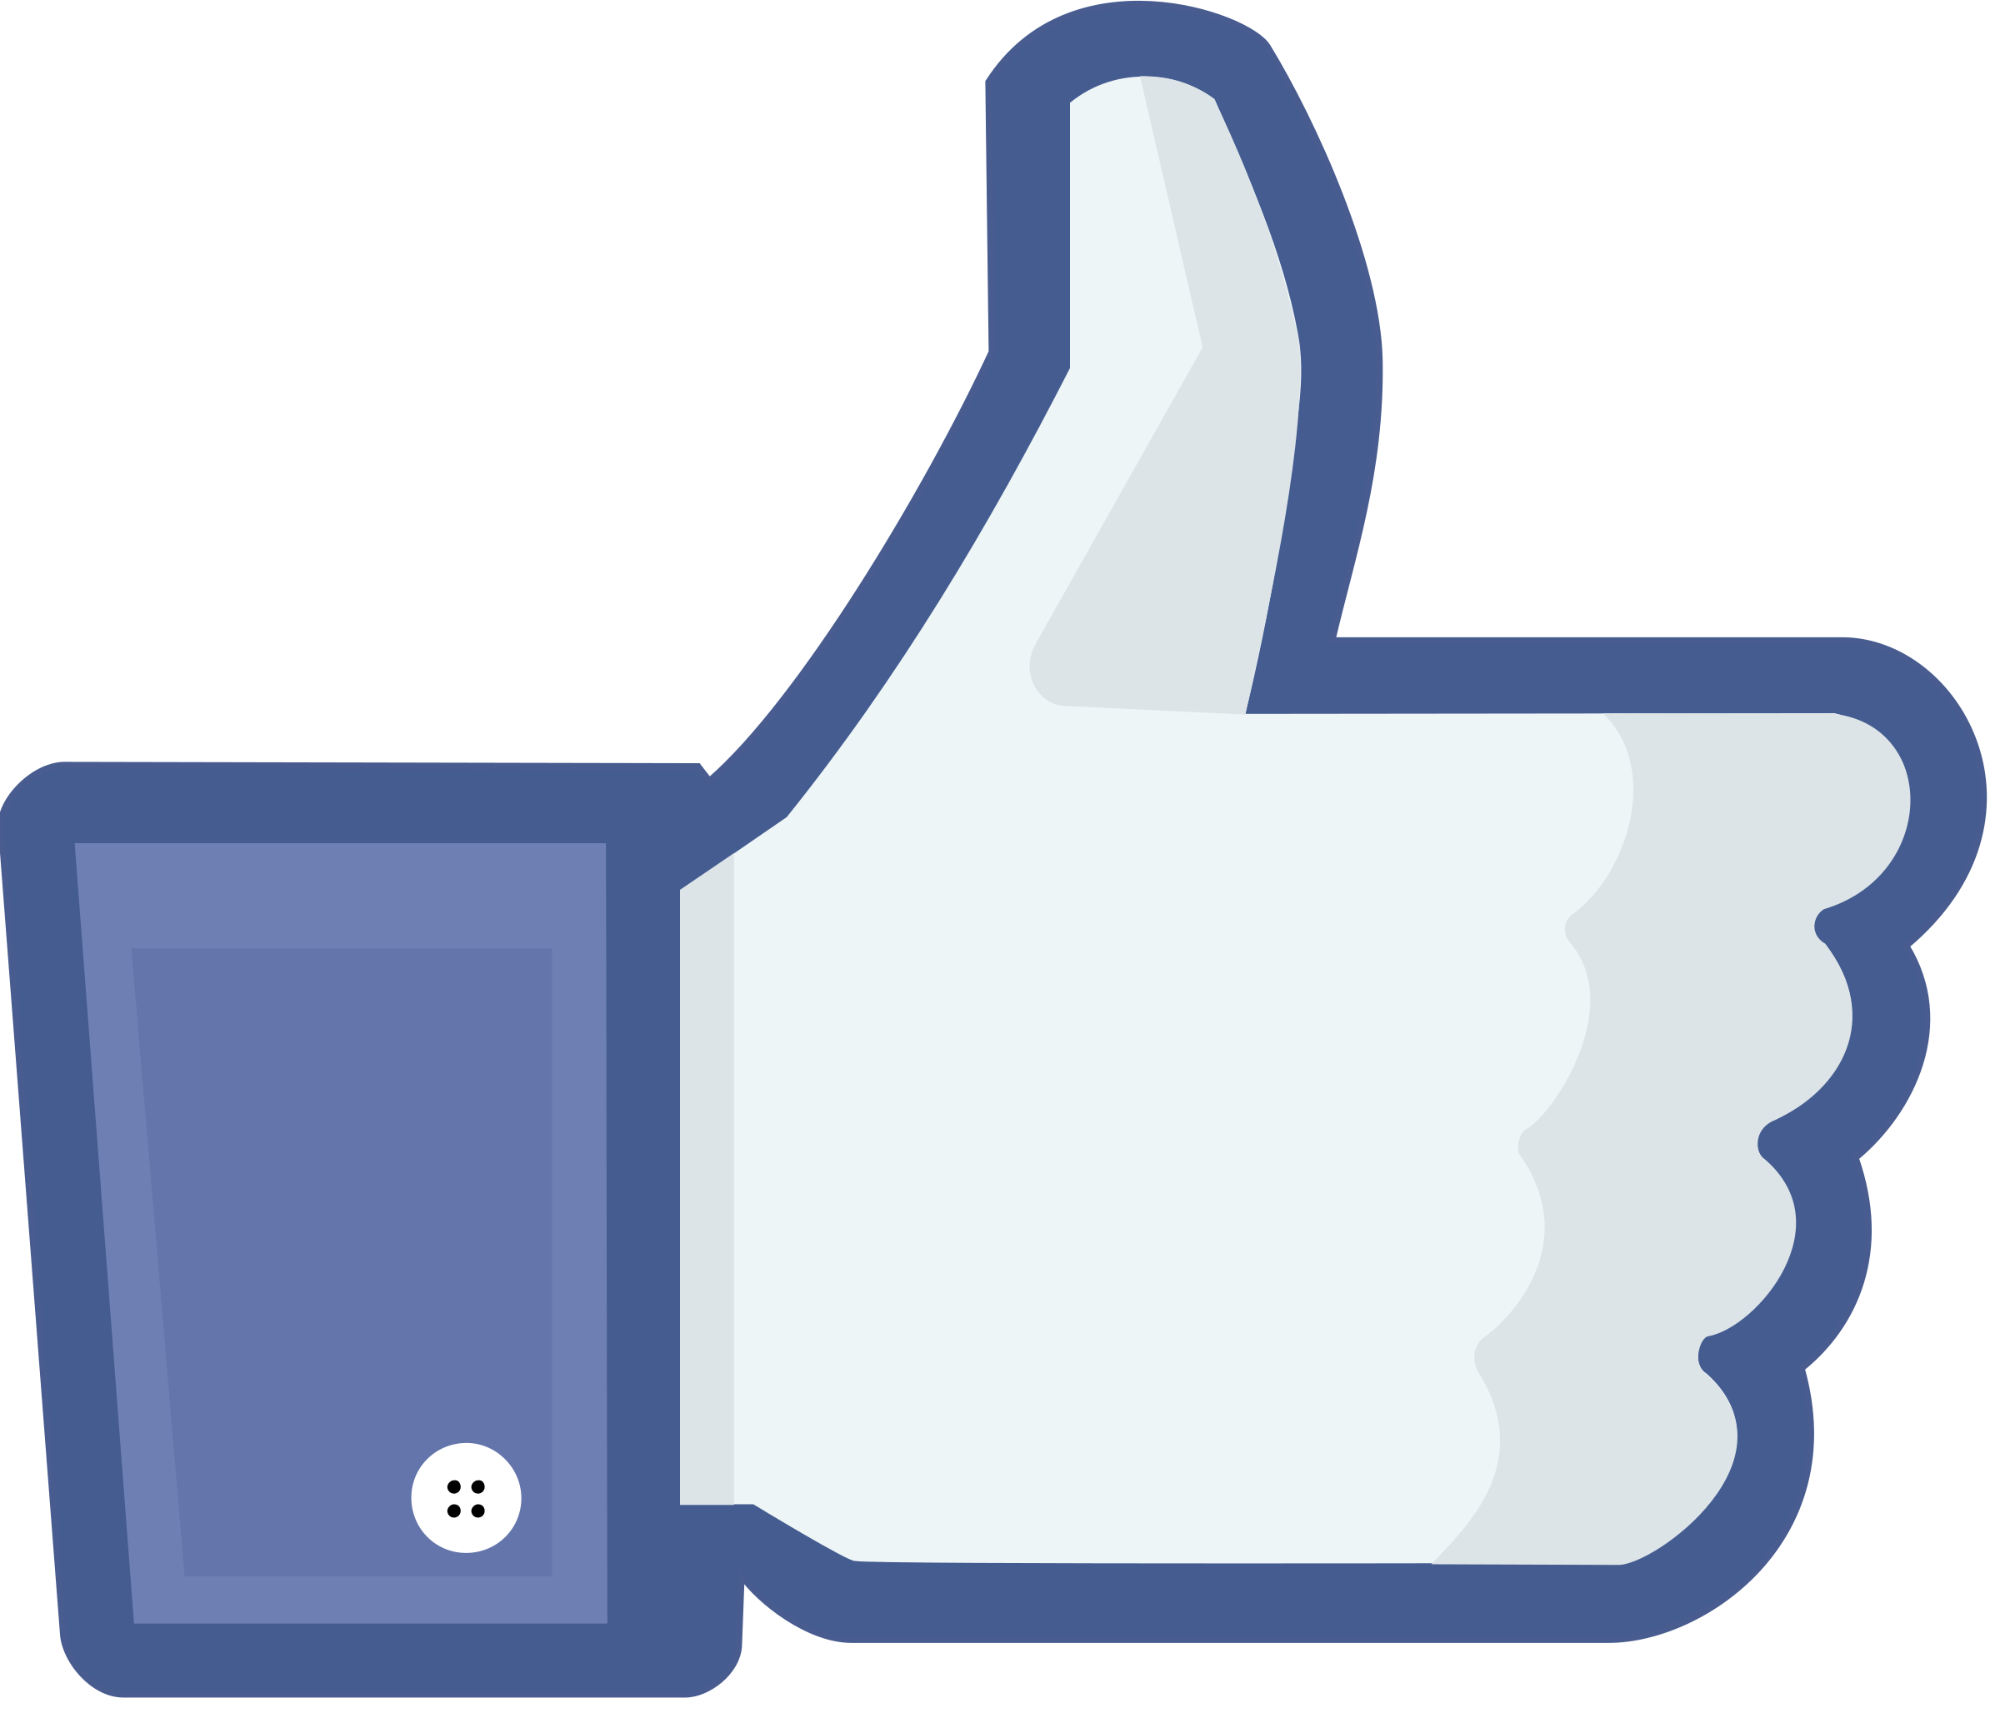 fb-like-logo-png-transparent.png